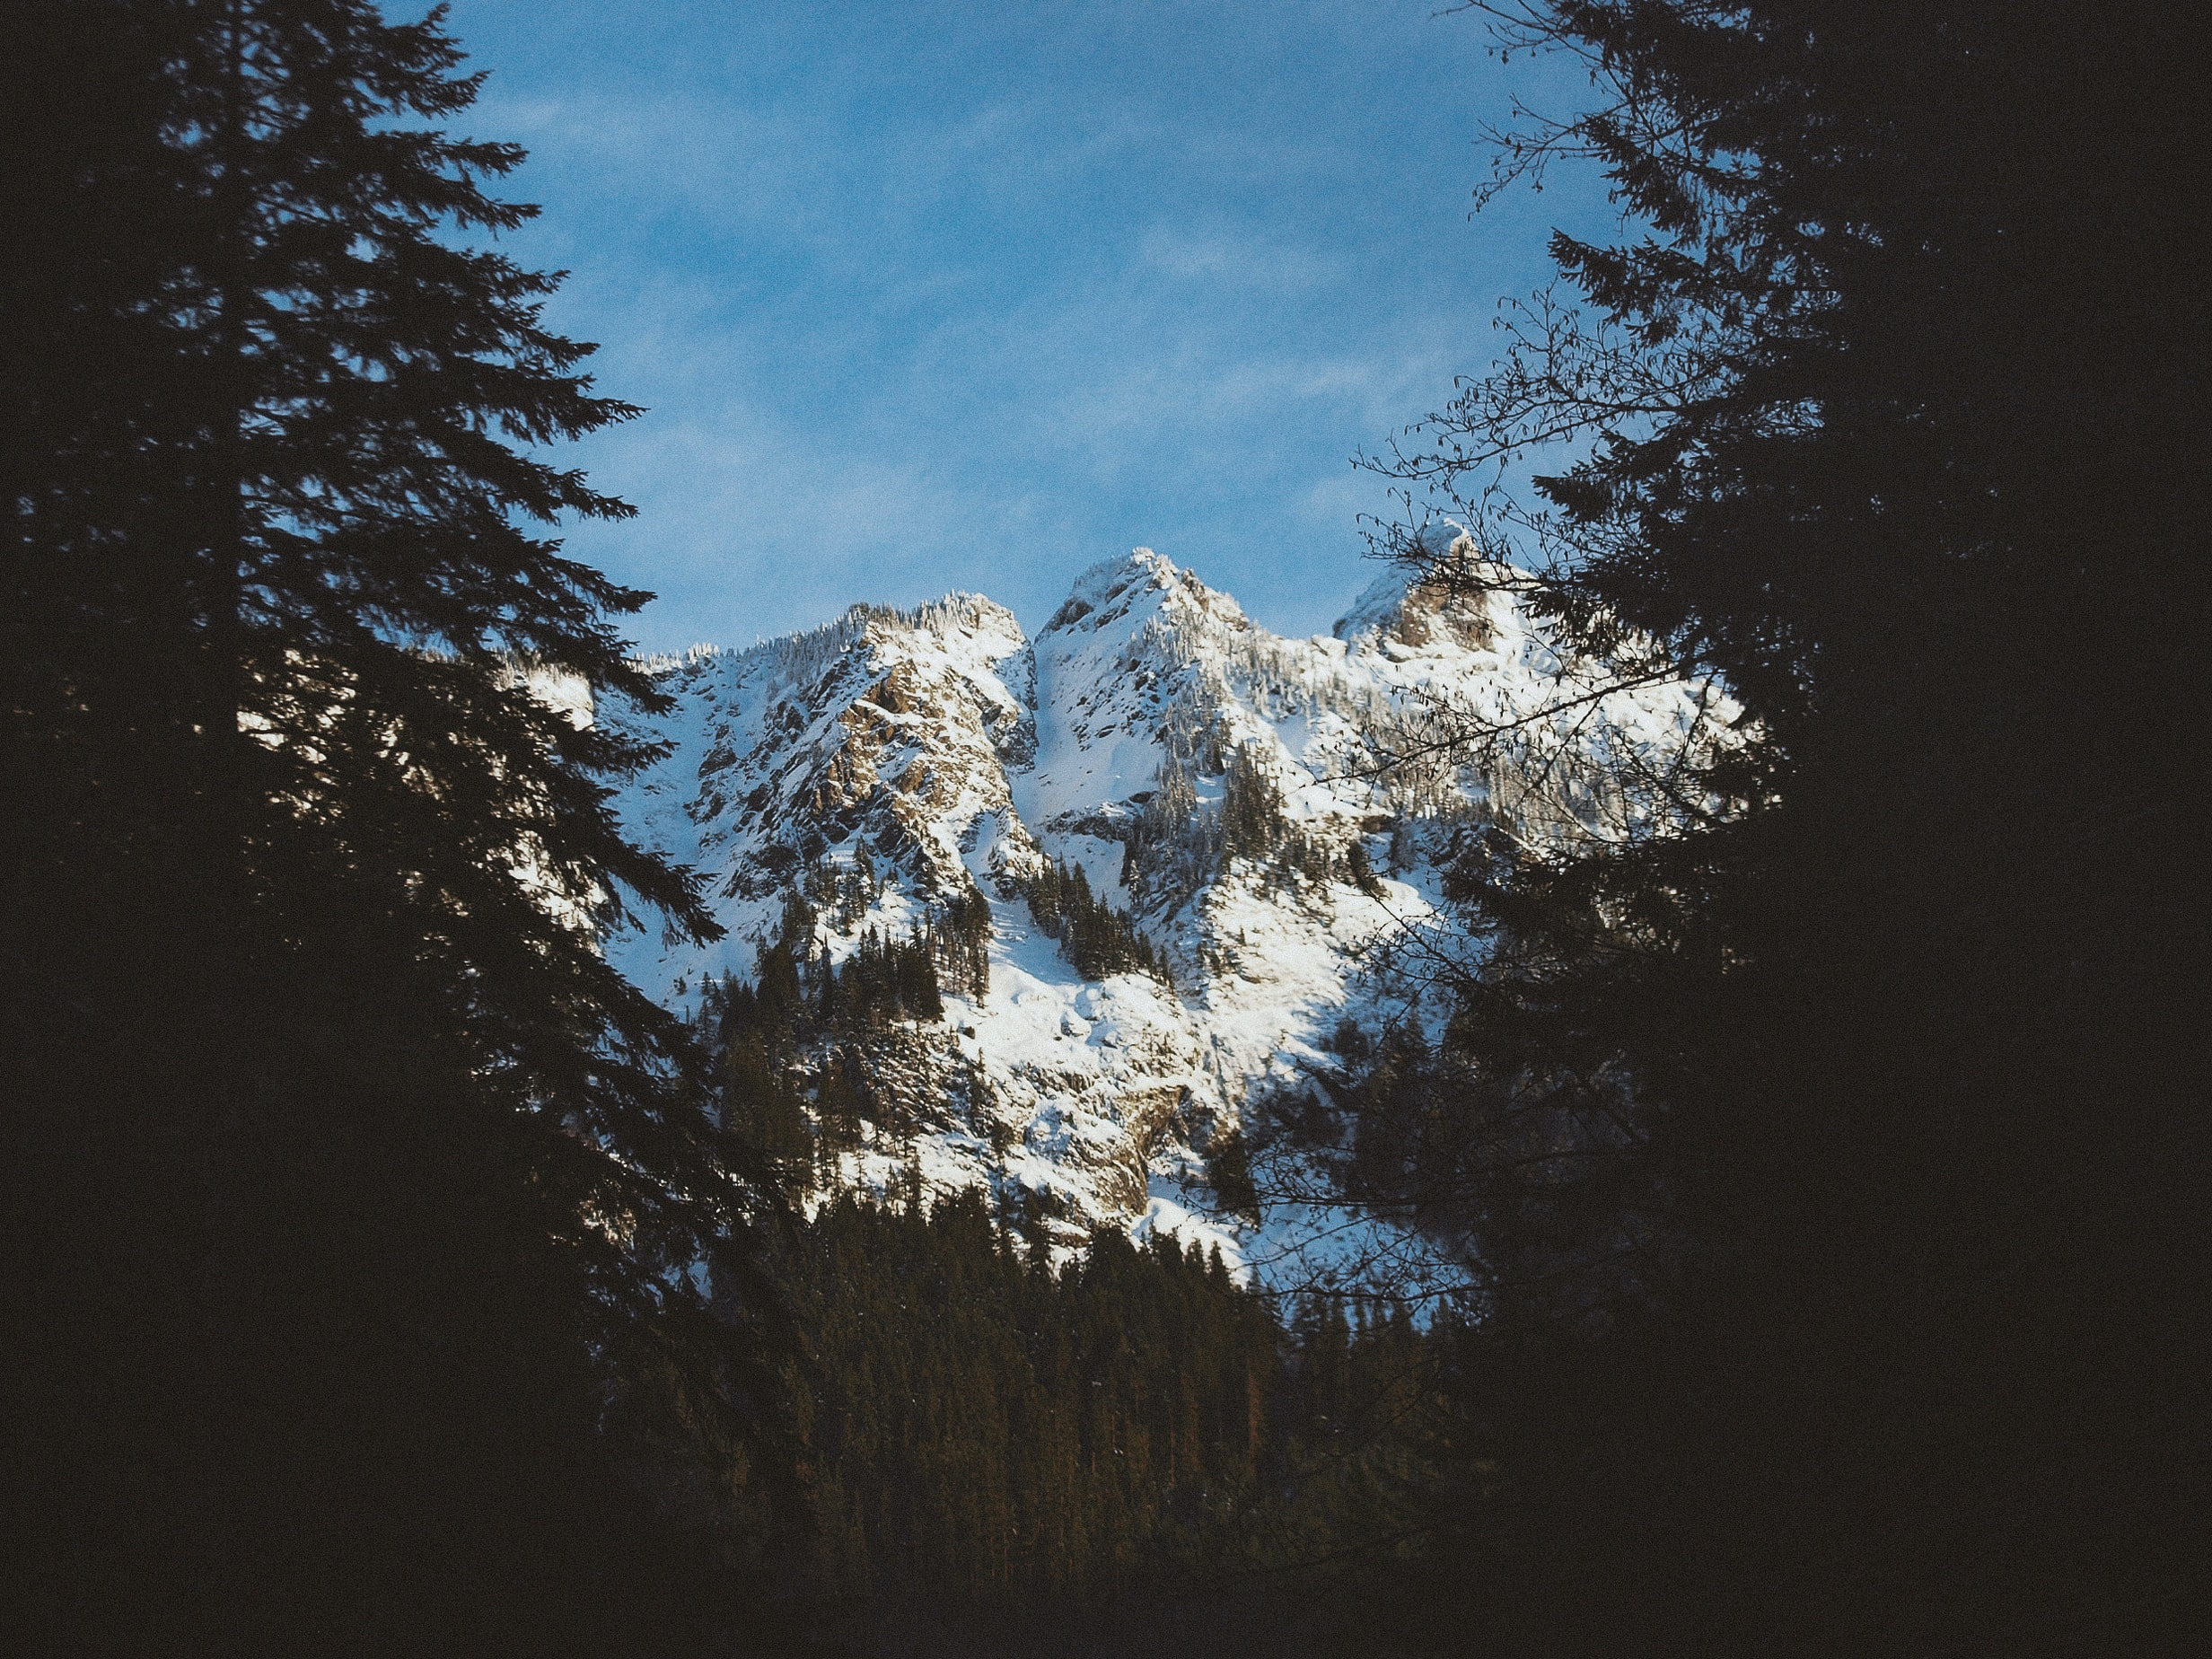 A steep snow-covered slope partially obscured by tall conifers in the Mount Baker National Forest